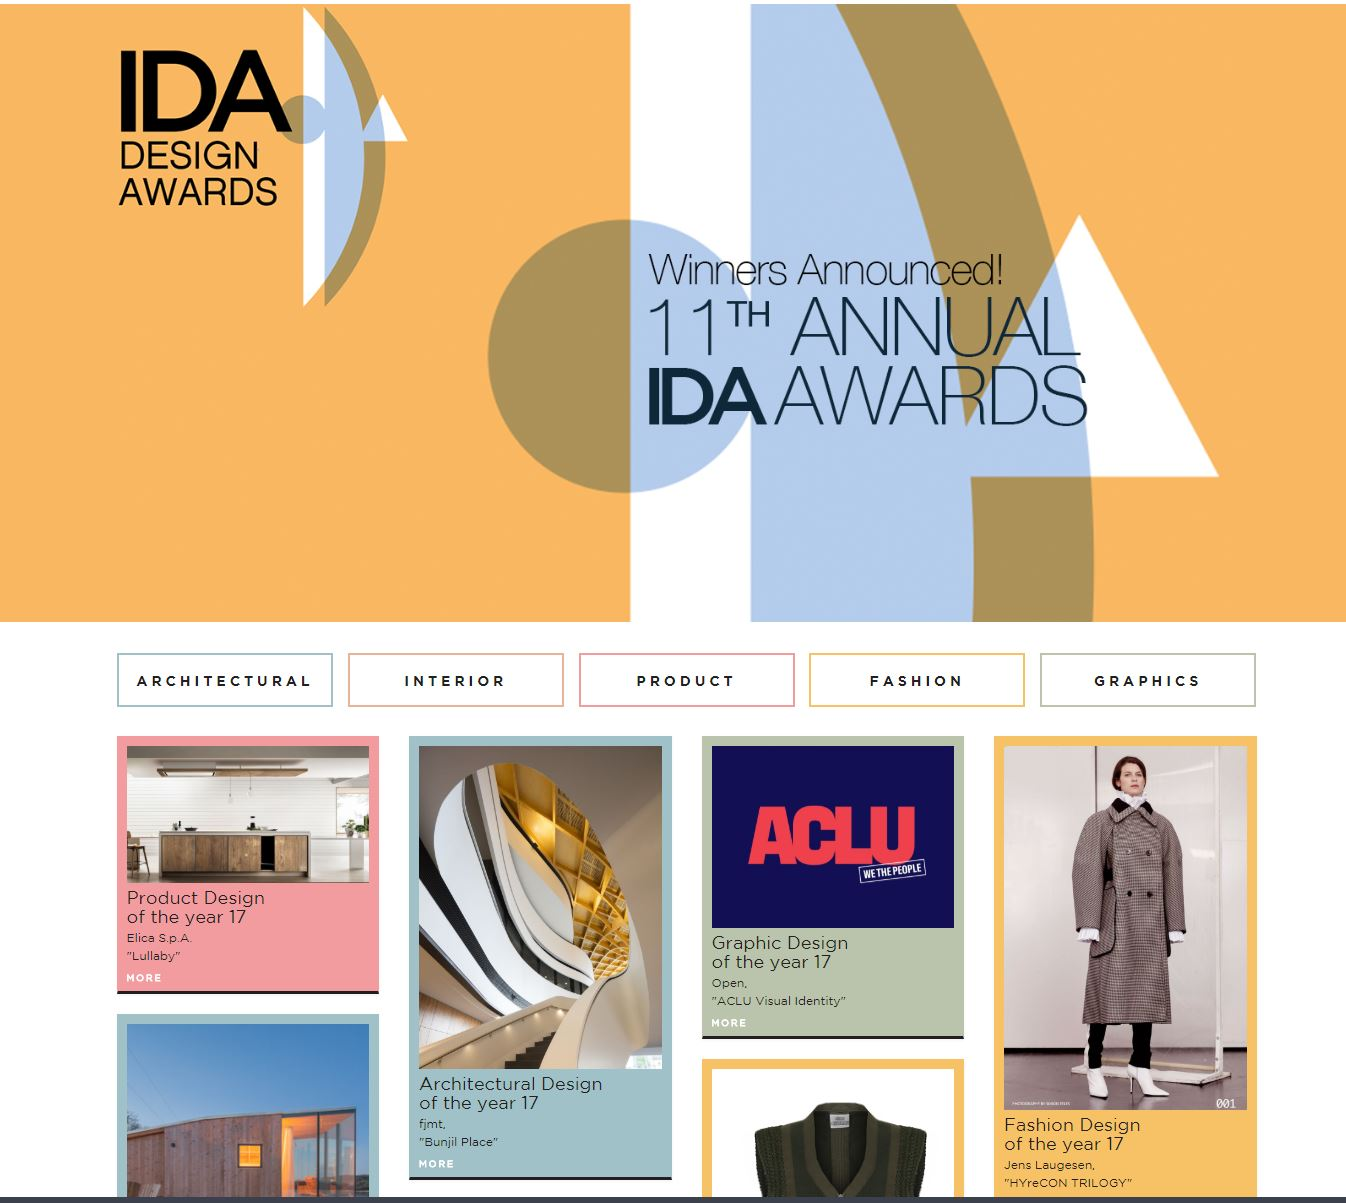 Park Place Wins Silver at 11th Annual IDA